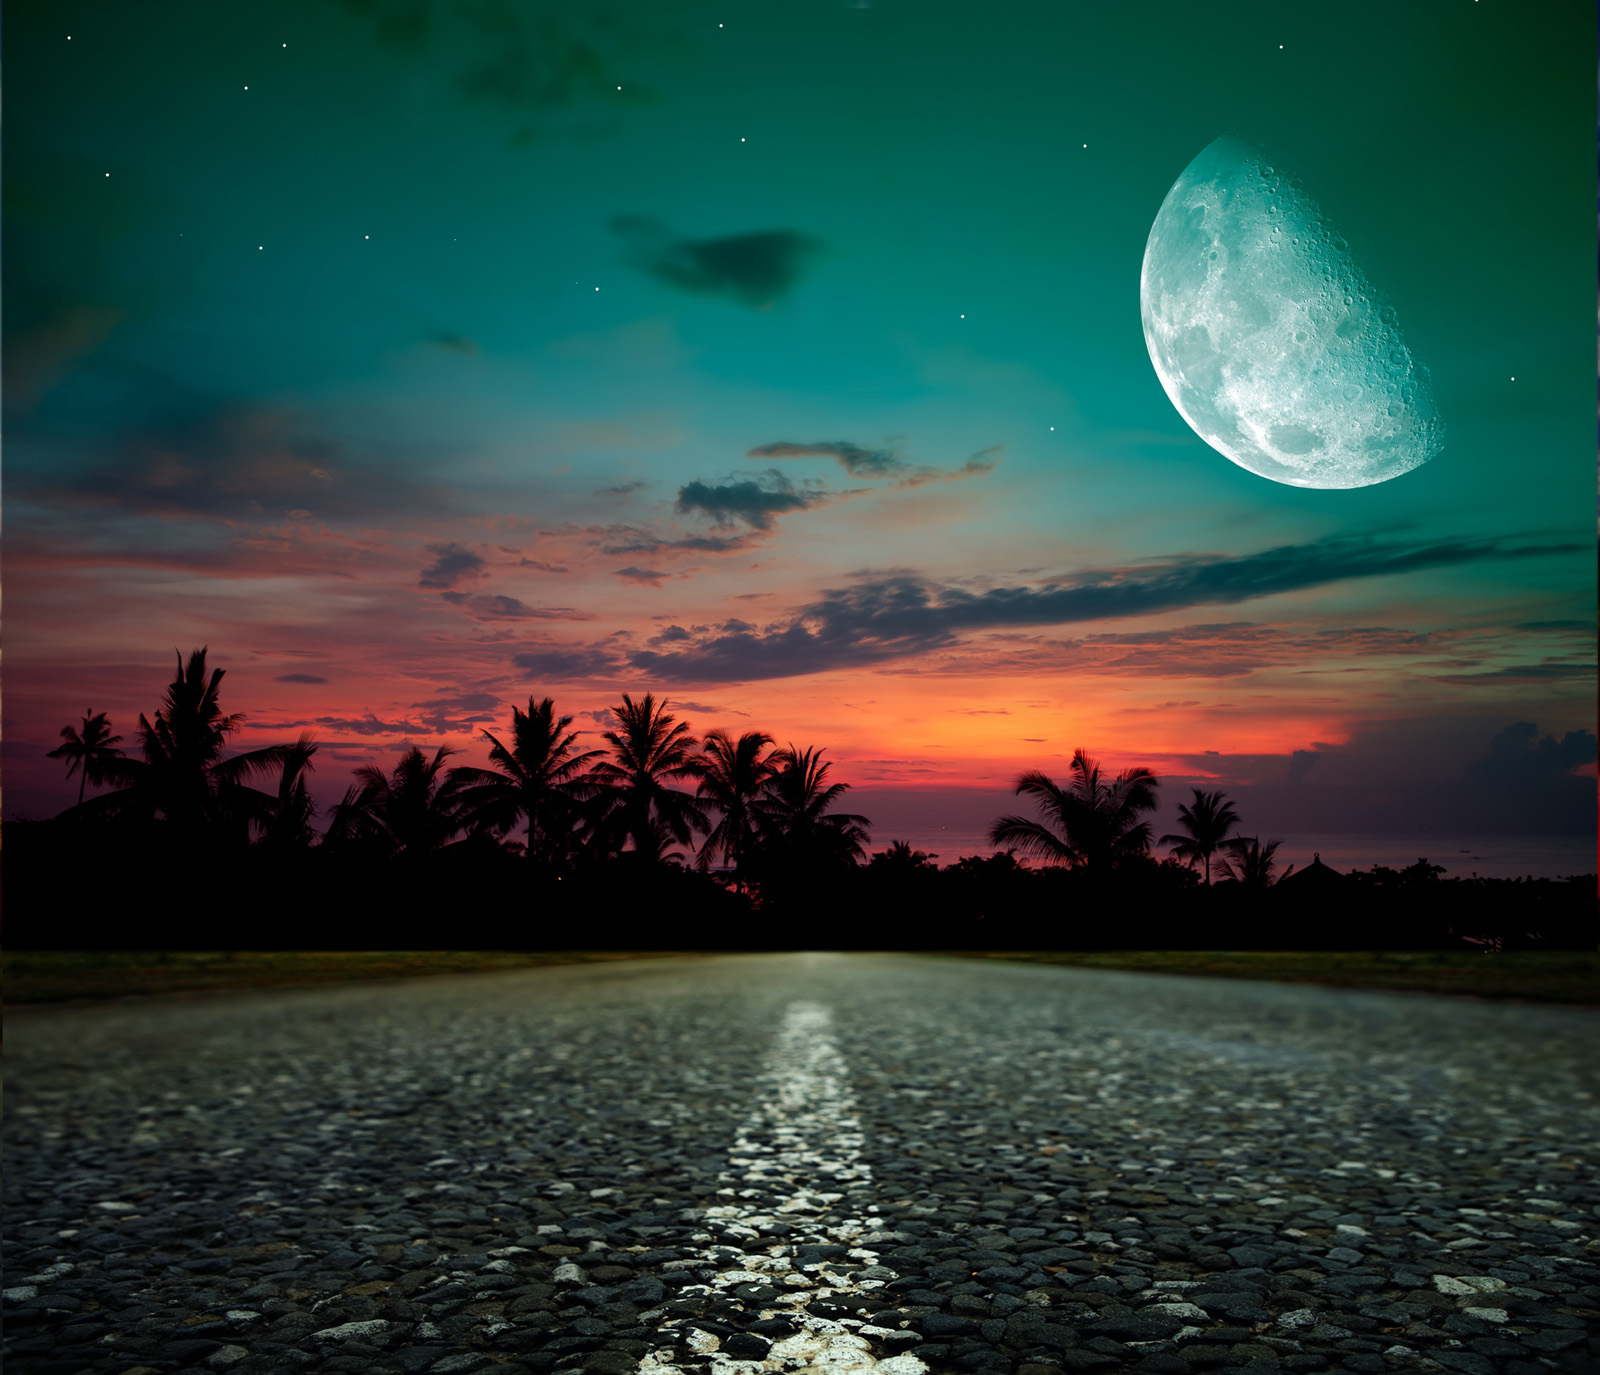 Sky Moon clouds and road 51029